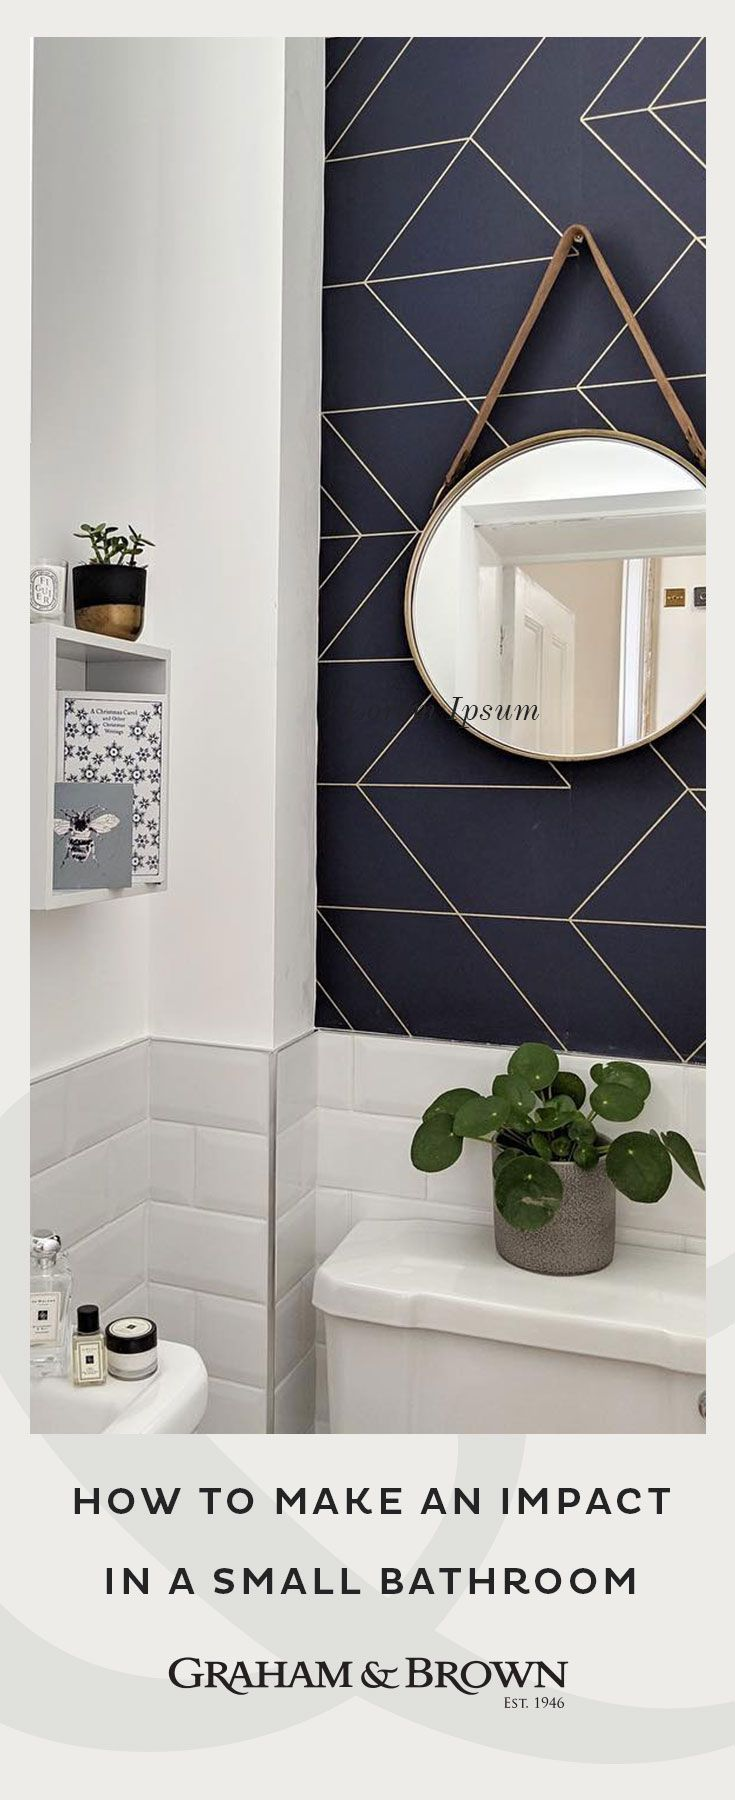 How To Make An Impact In A Small Bathroom Using Wallpaper In The Bathroom Navy Wallpaper Navy Wallpaper Navy Decor Gold Wallpaper